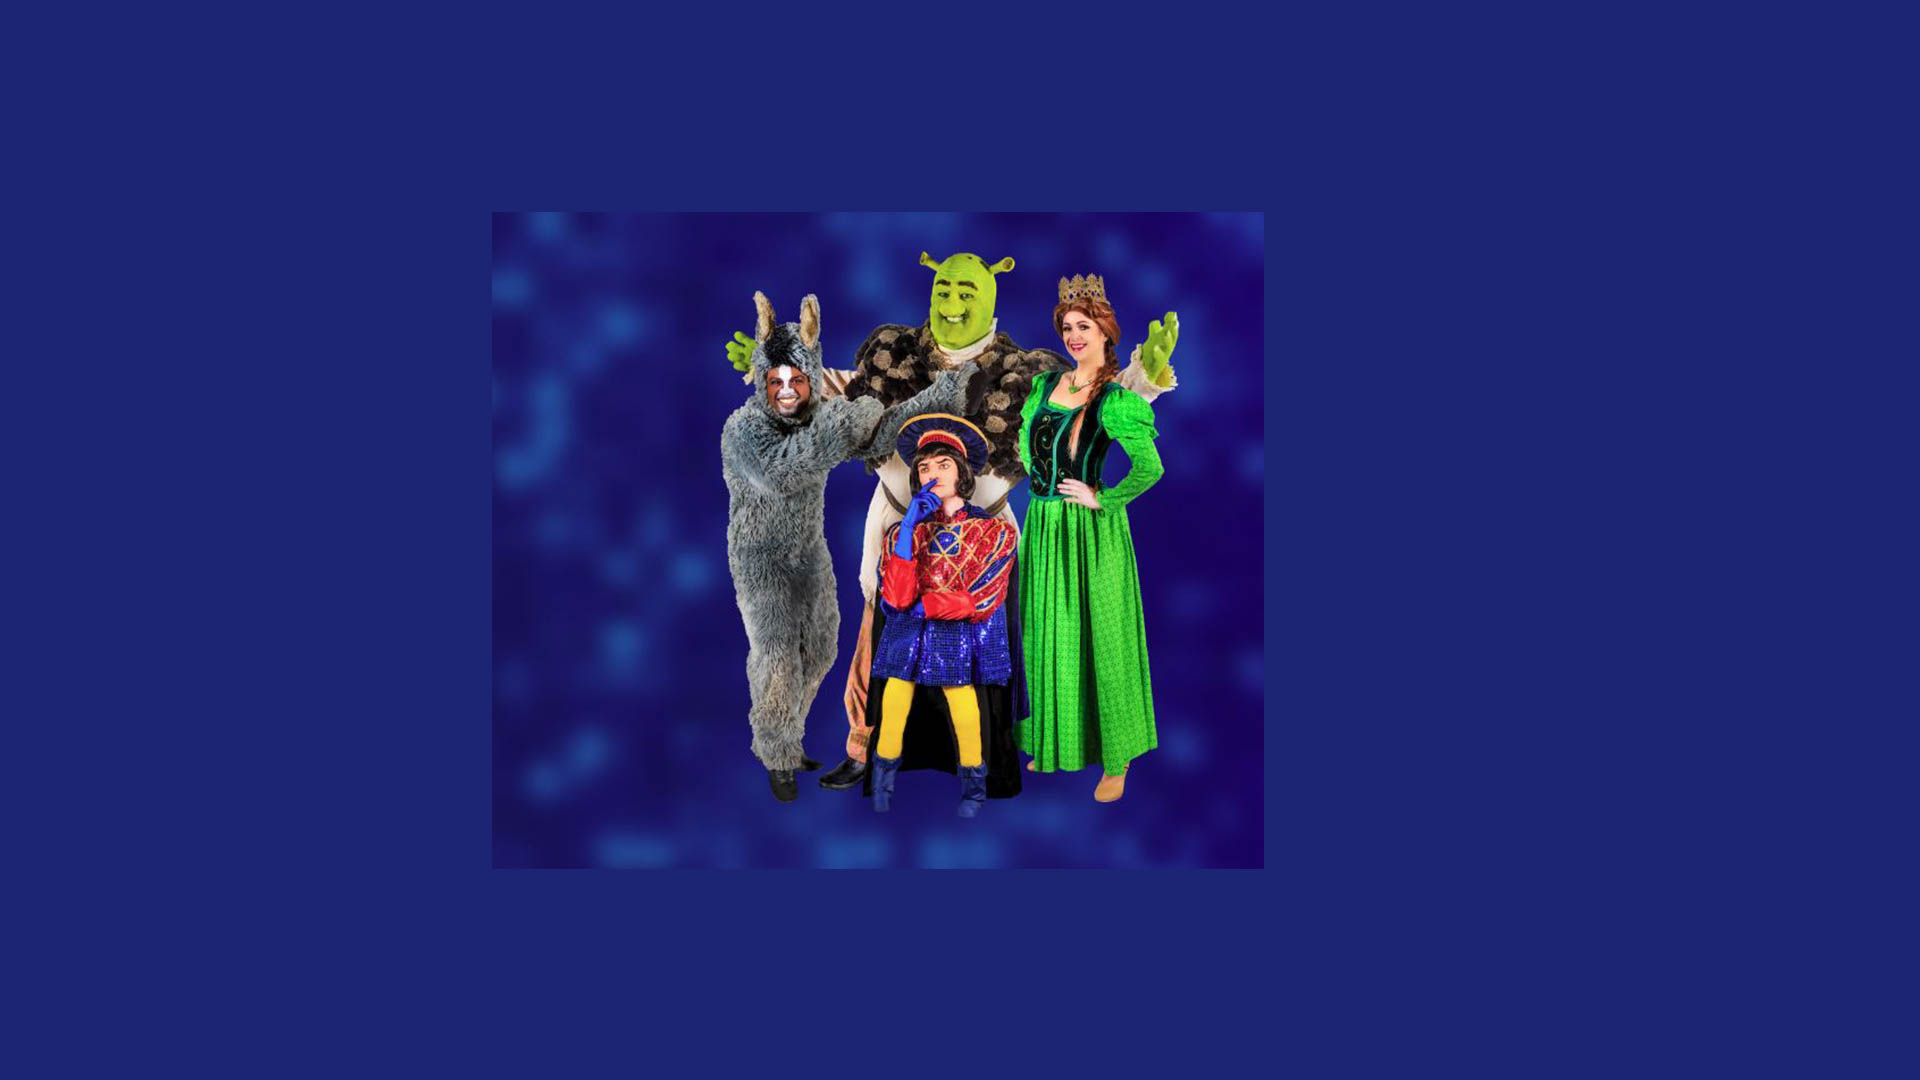 190703 Shreck Cast - Shrek The Musical wowing Branson audiences